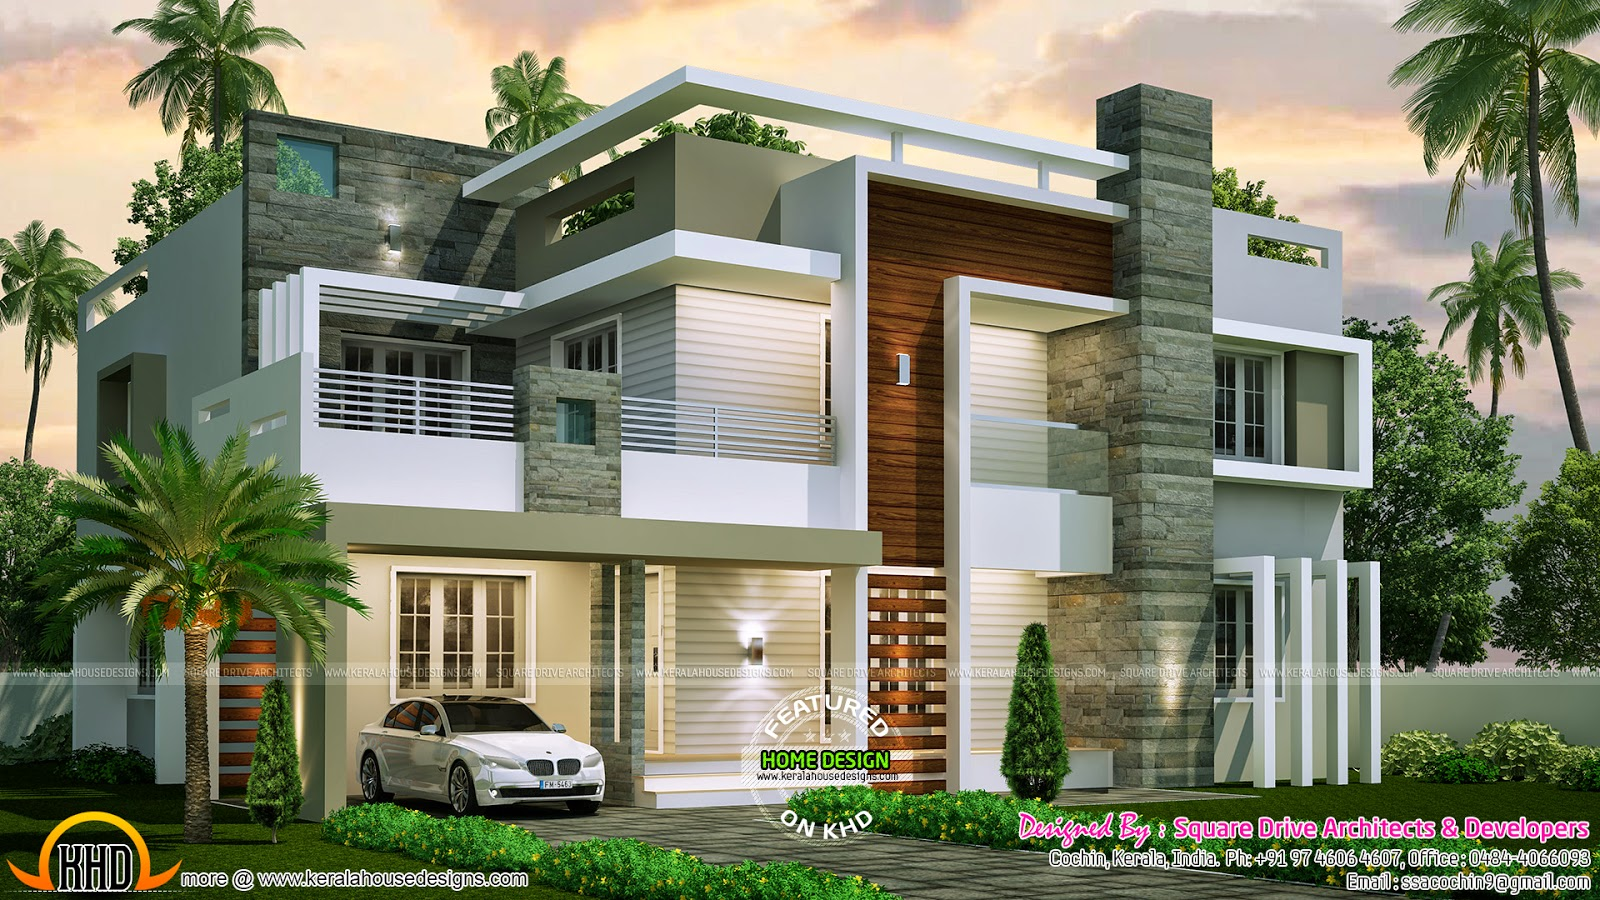 4 bedroom contemporary home design